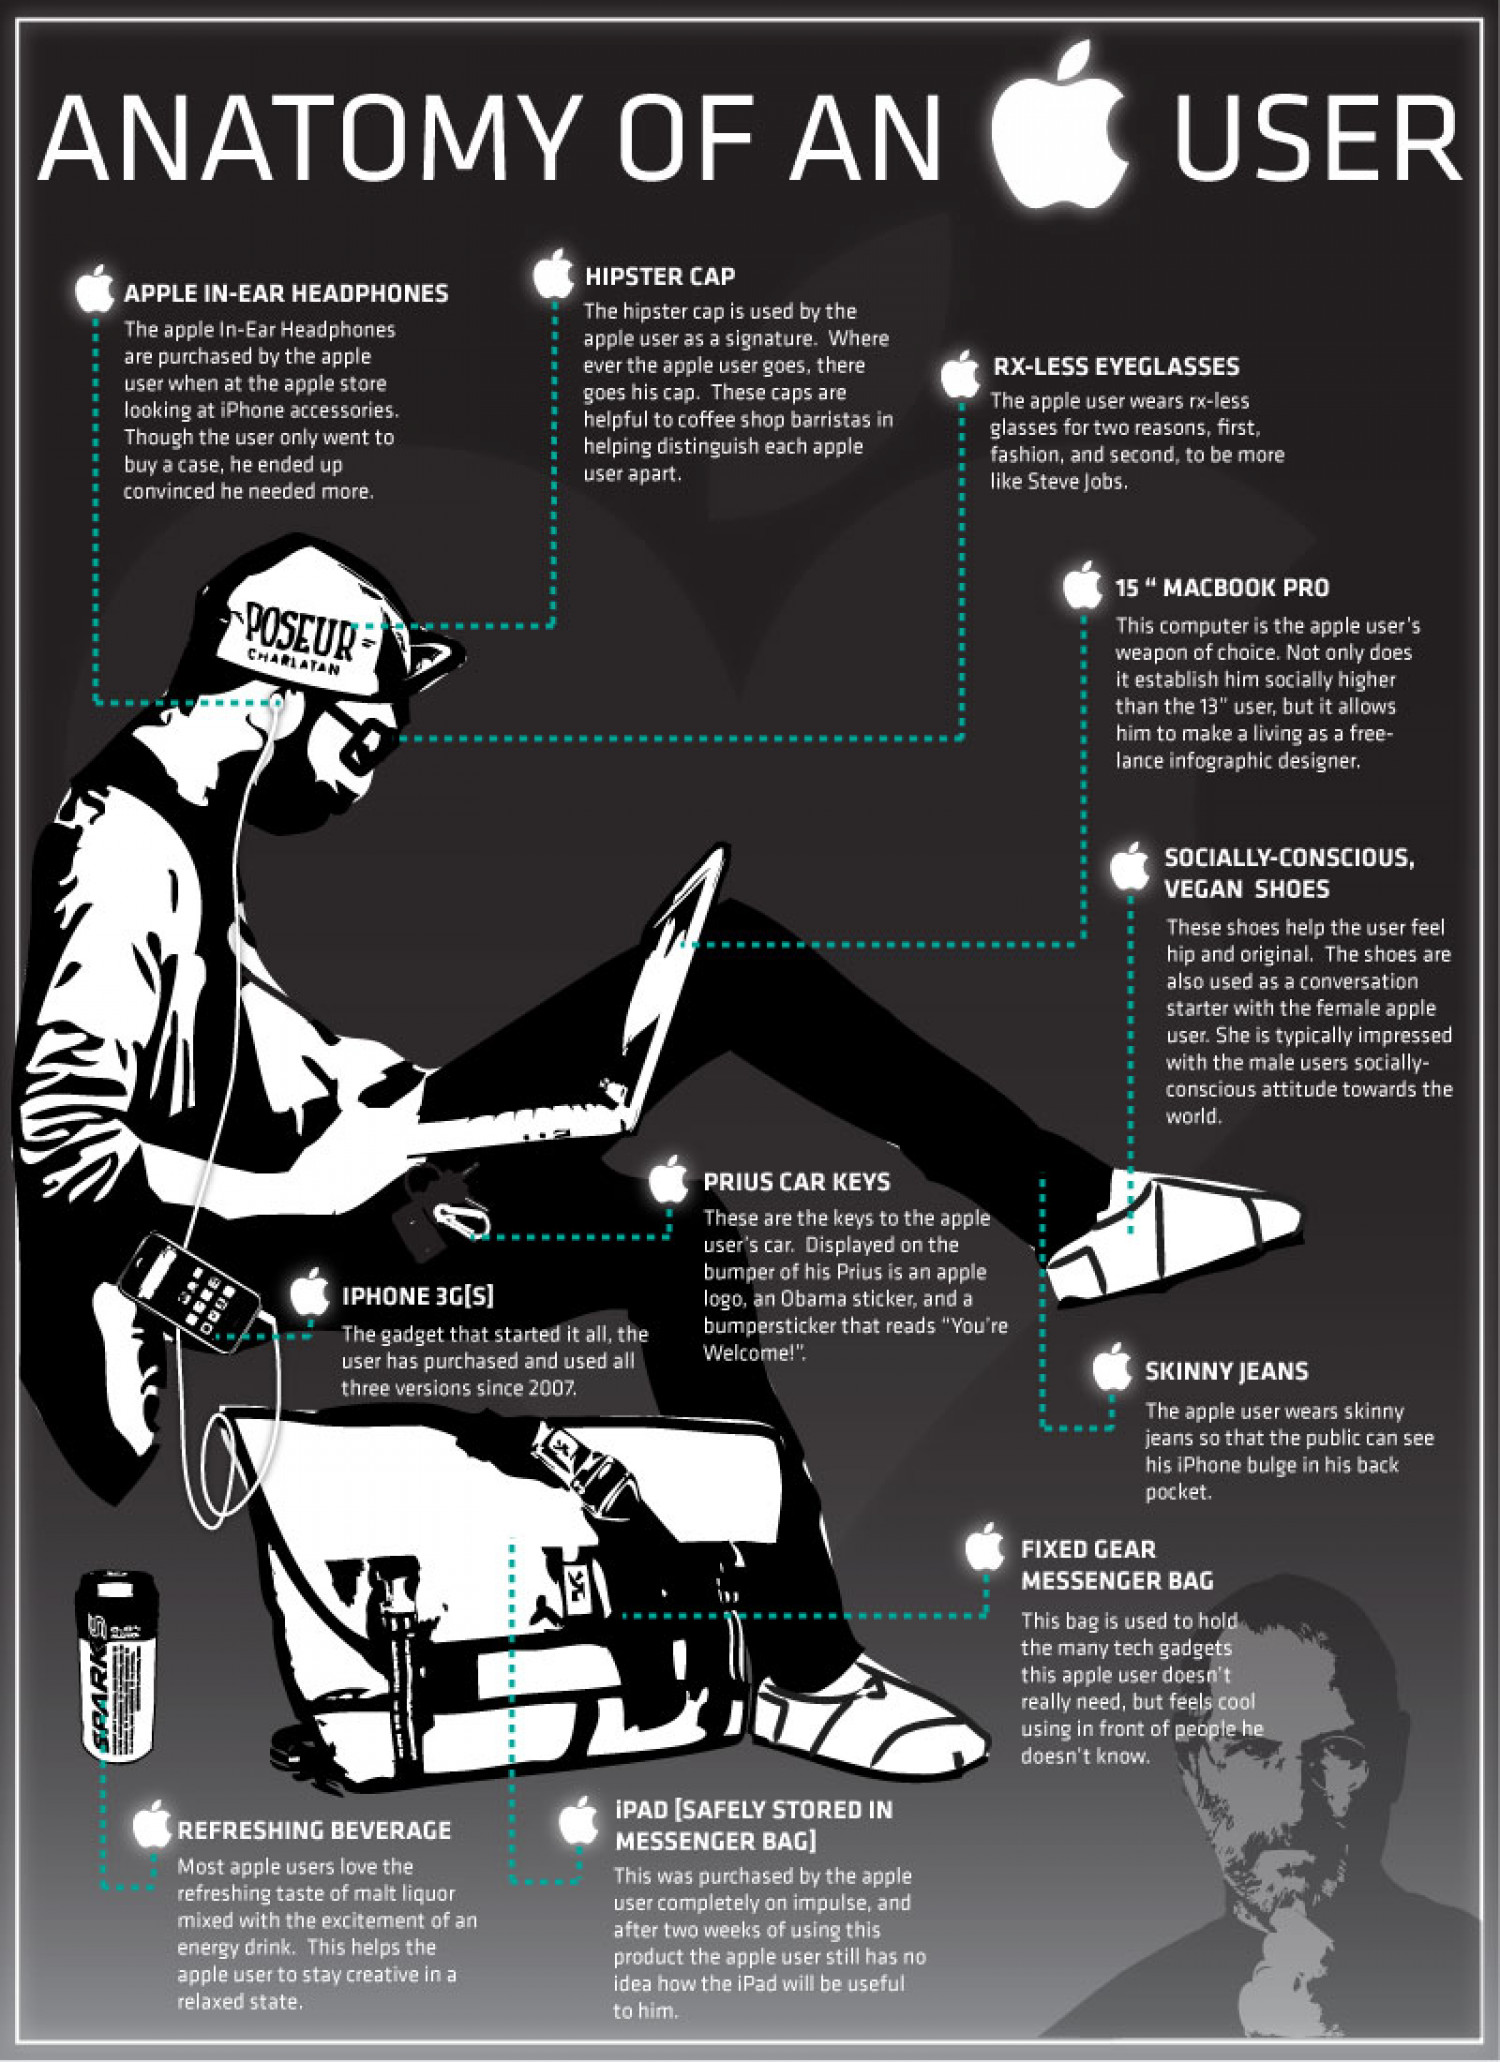 Anatomy of an Apple user Infographic